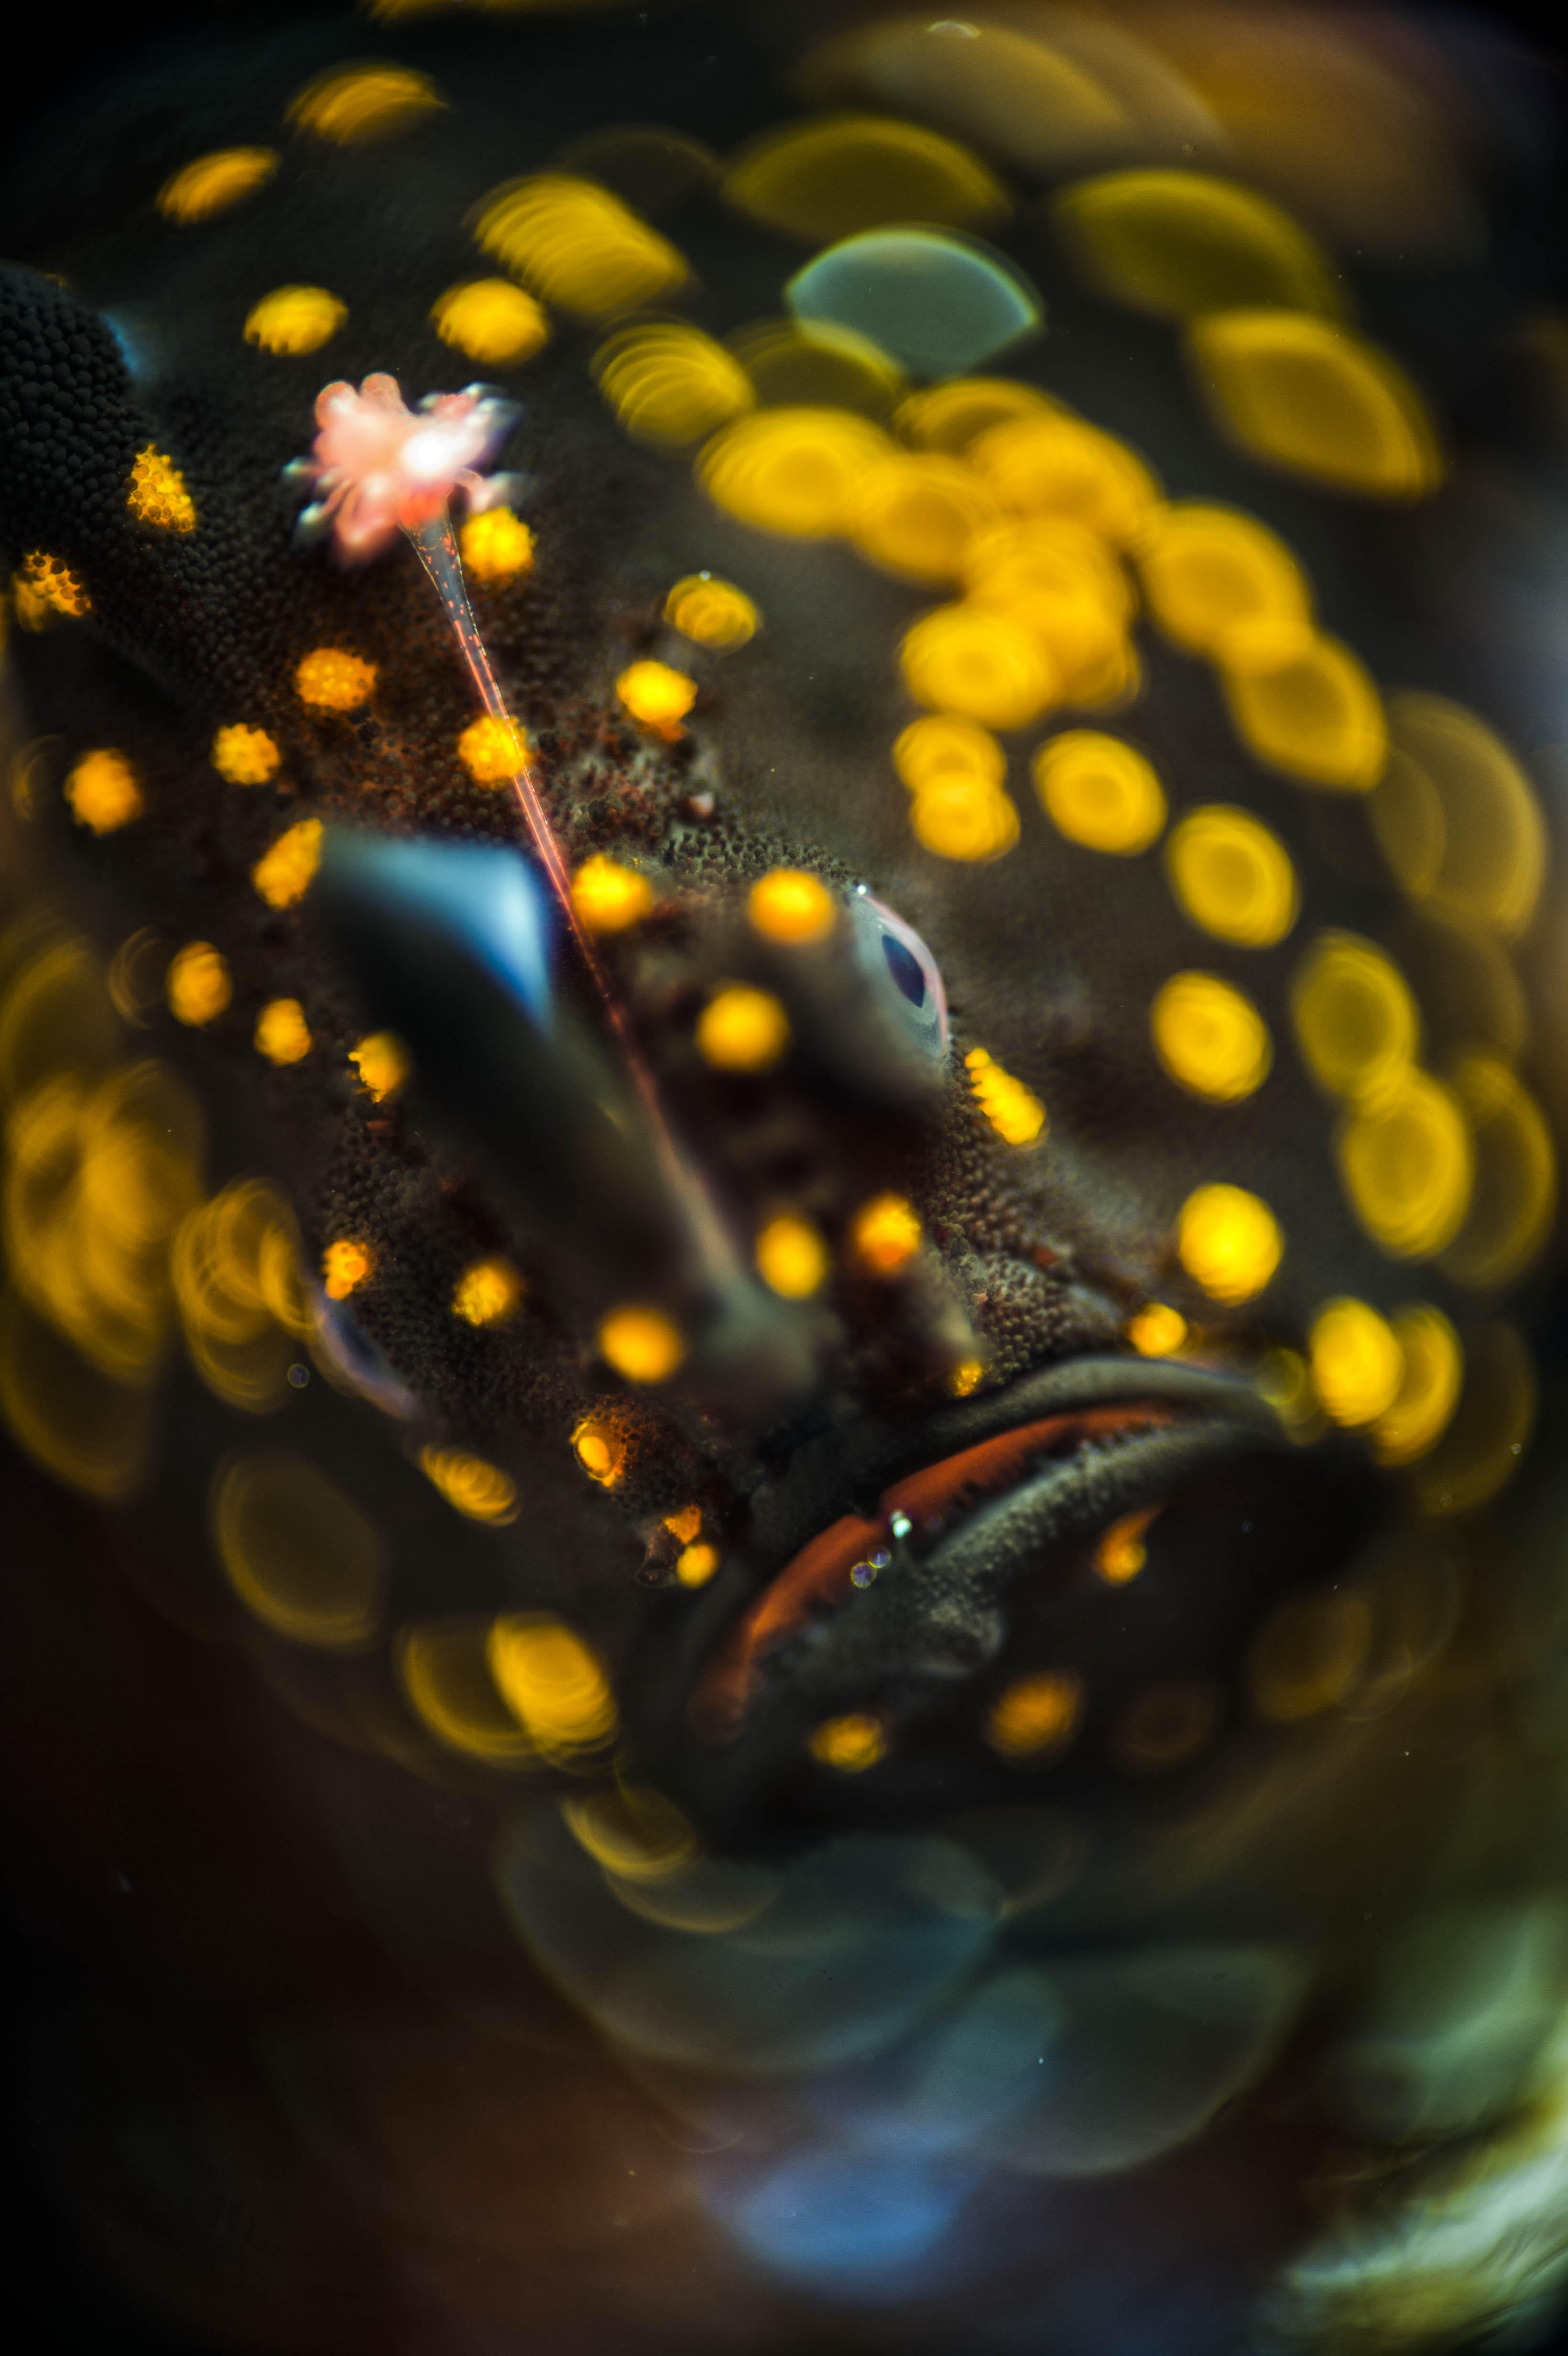 """I wasn't gonna back down so my research and testing paid off when I shot ""Bokehlicious"". It was a black frogfish with yellow spots. That got the hype going."" © Imran Ahmad"